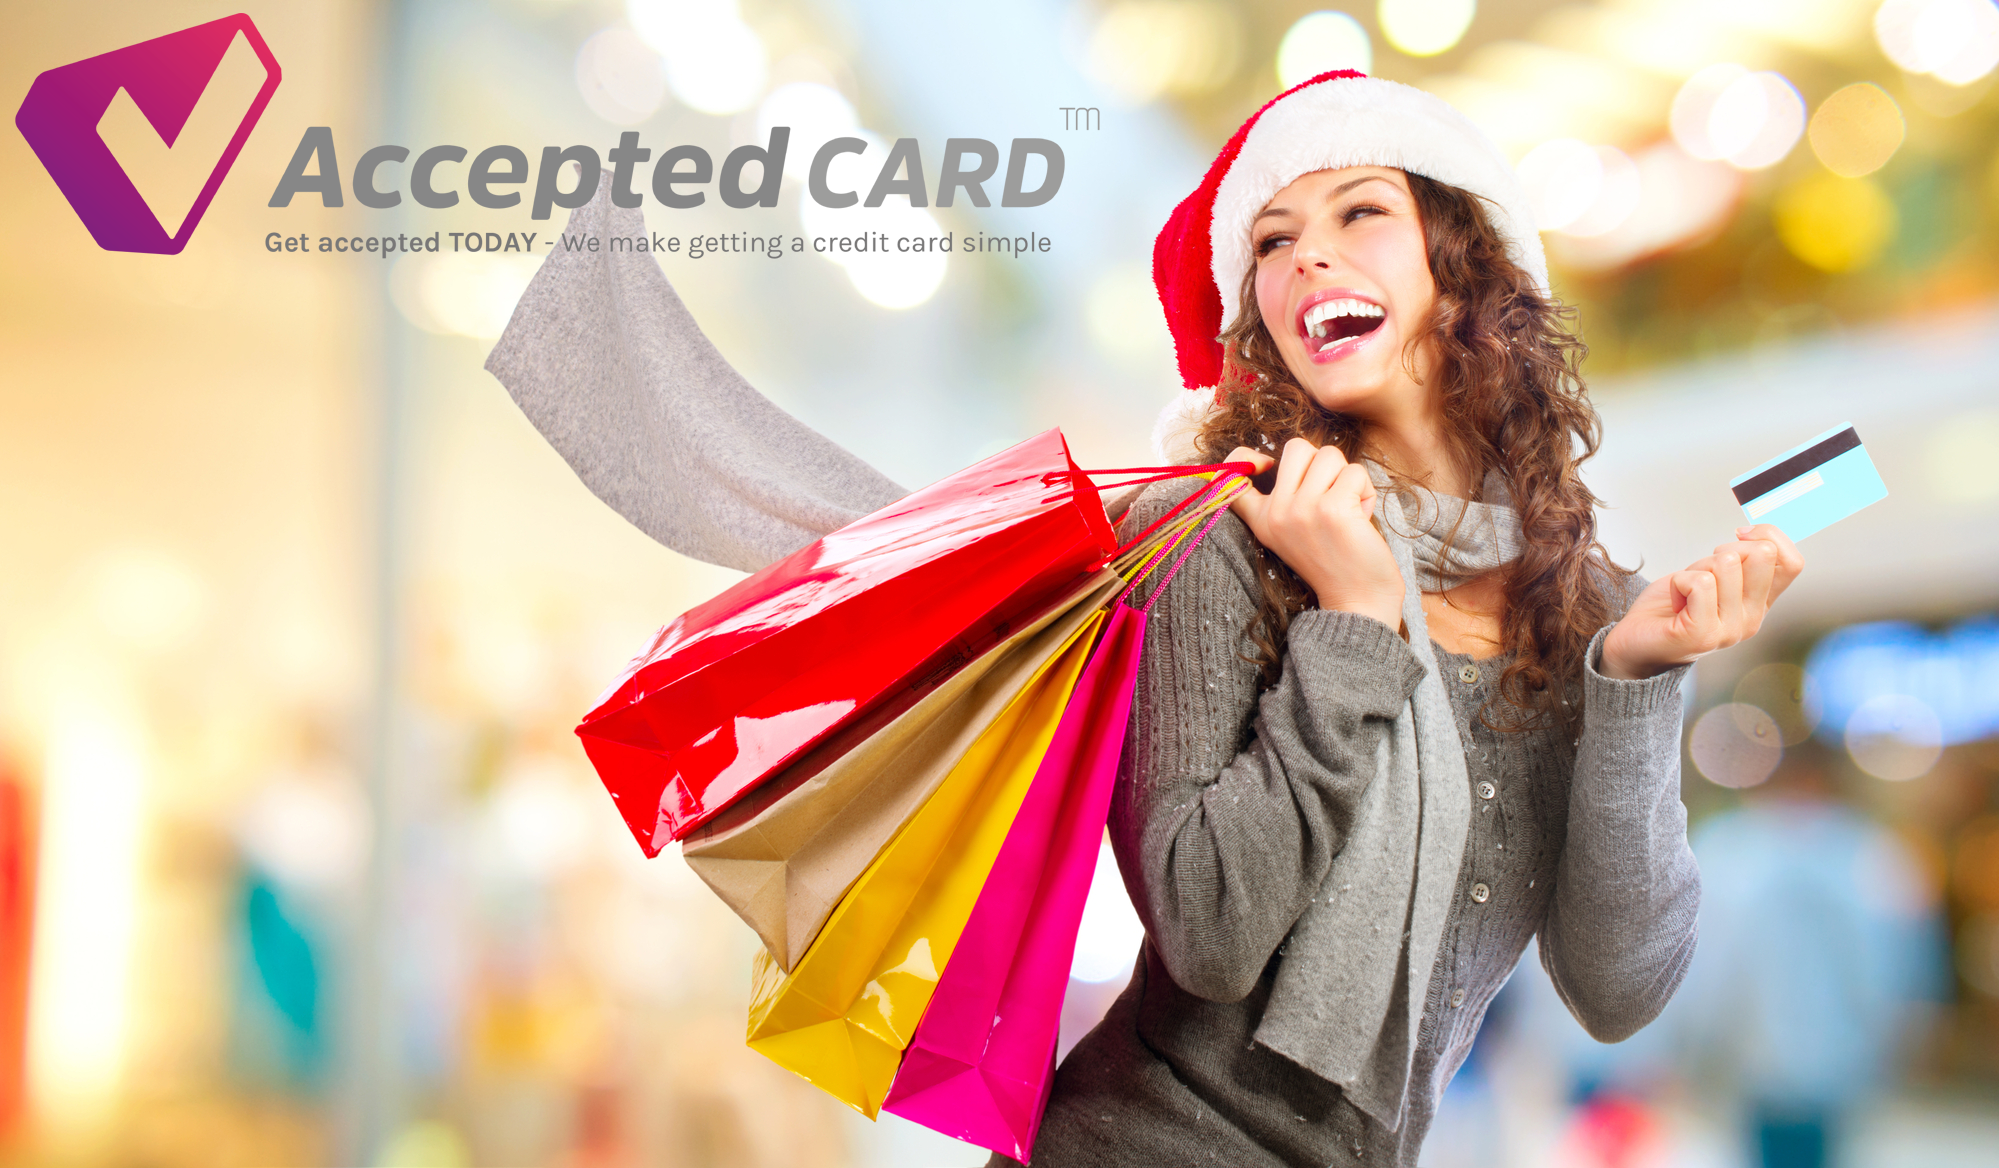 Quick access to credit cards for bad credit Accepted Credit Card UK